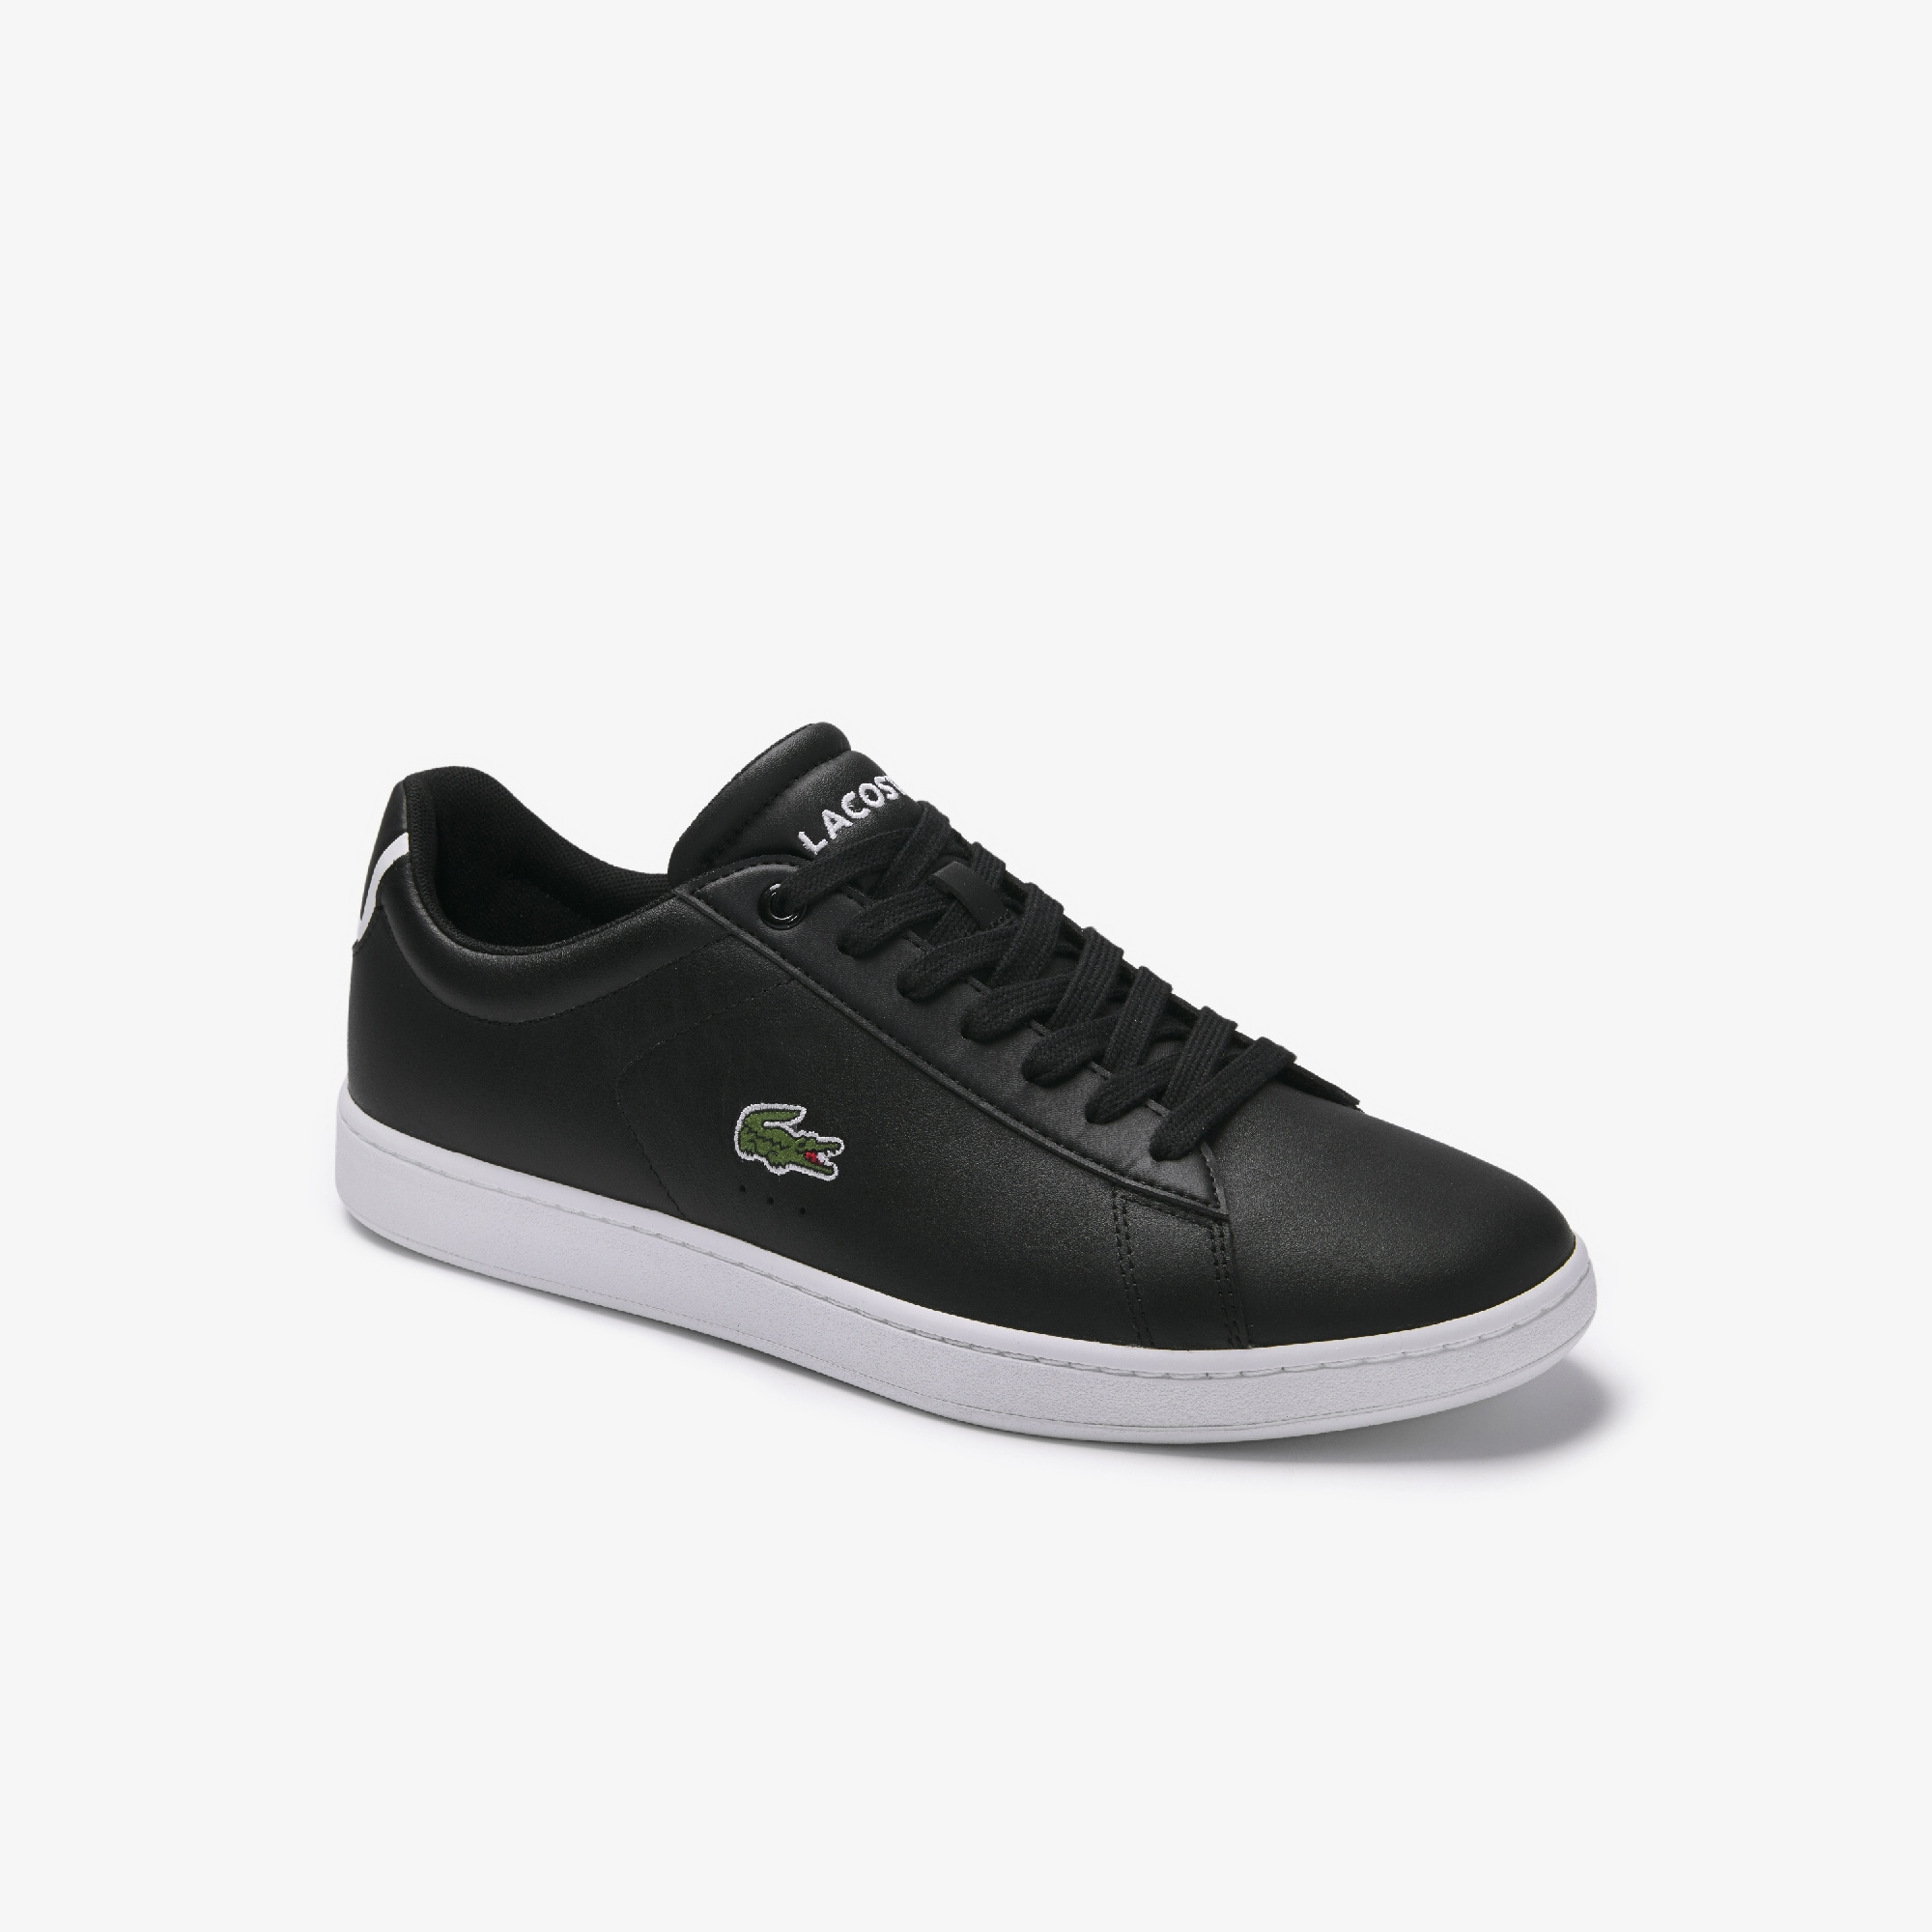 Men's Carnaby Evo Leather Evo Trainers